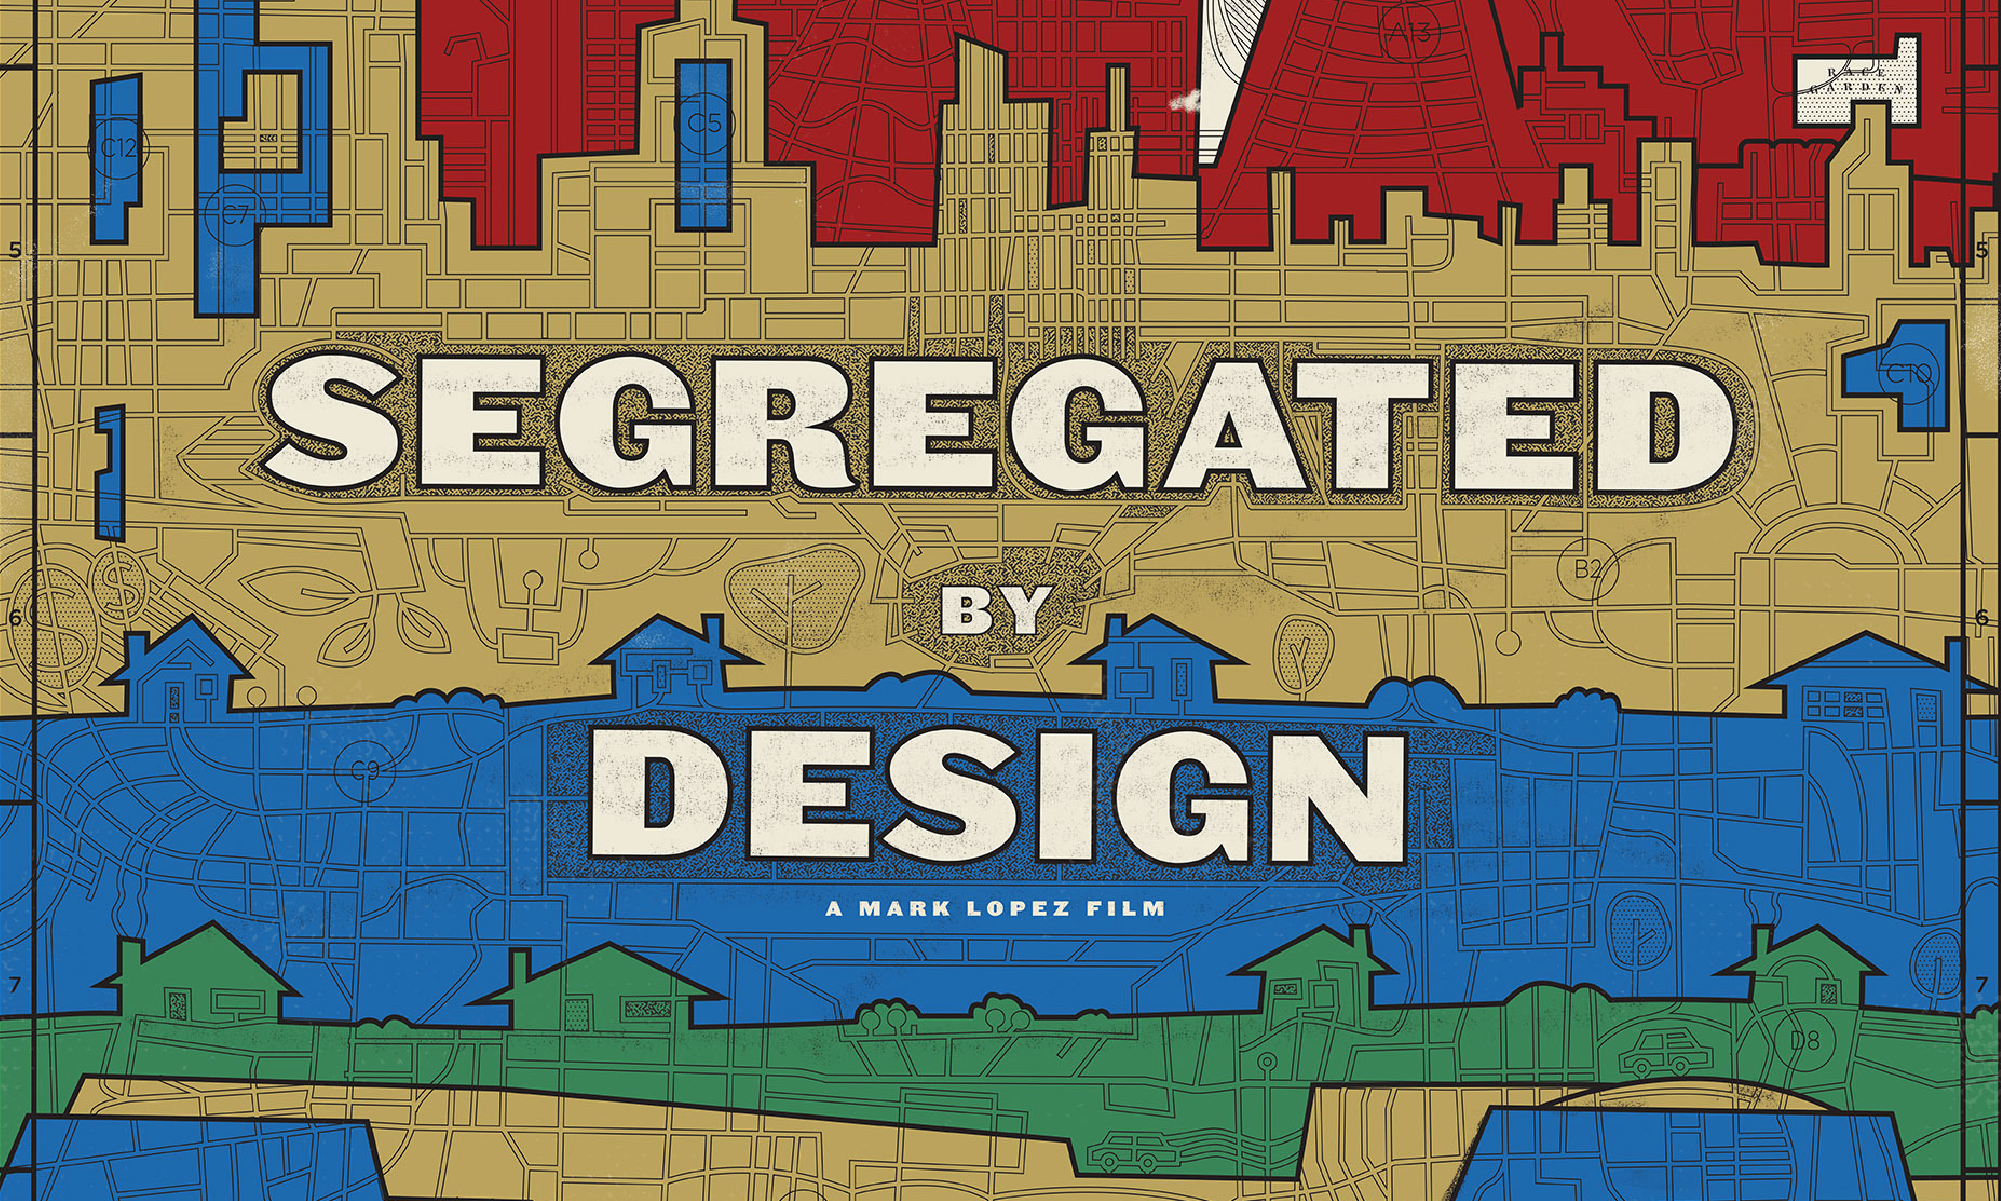 Segregated by Design is an award-winning short film based on the best-selling book The Color of Law.